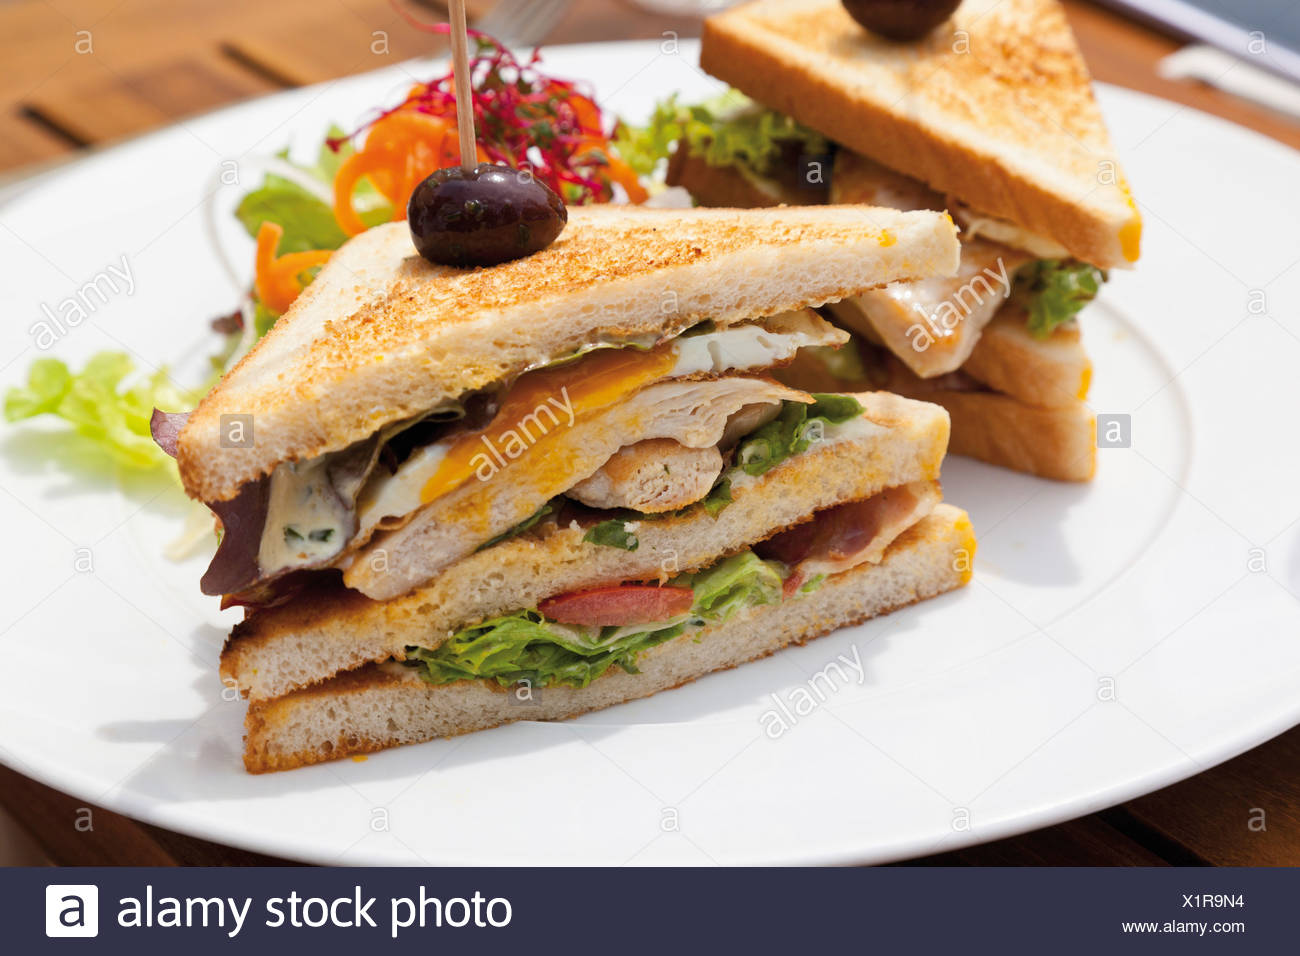 Close up of sandwiches - Stock Image